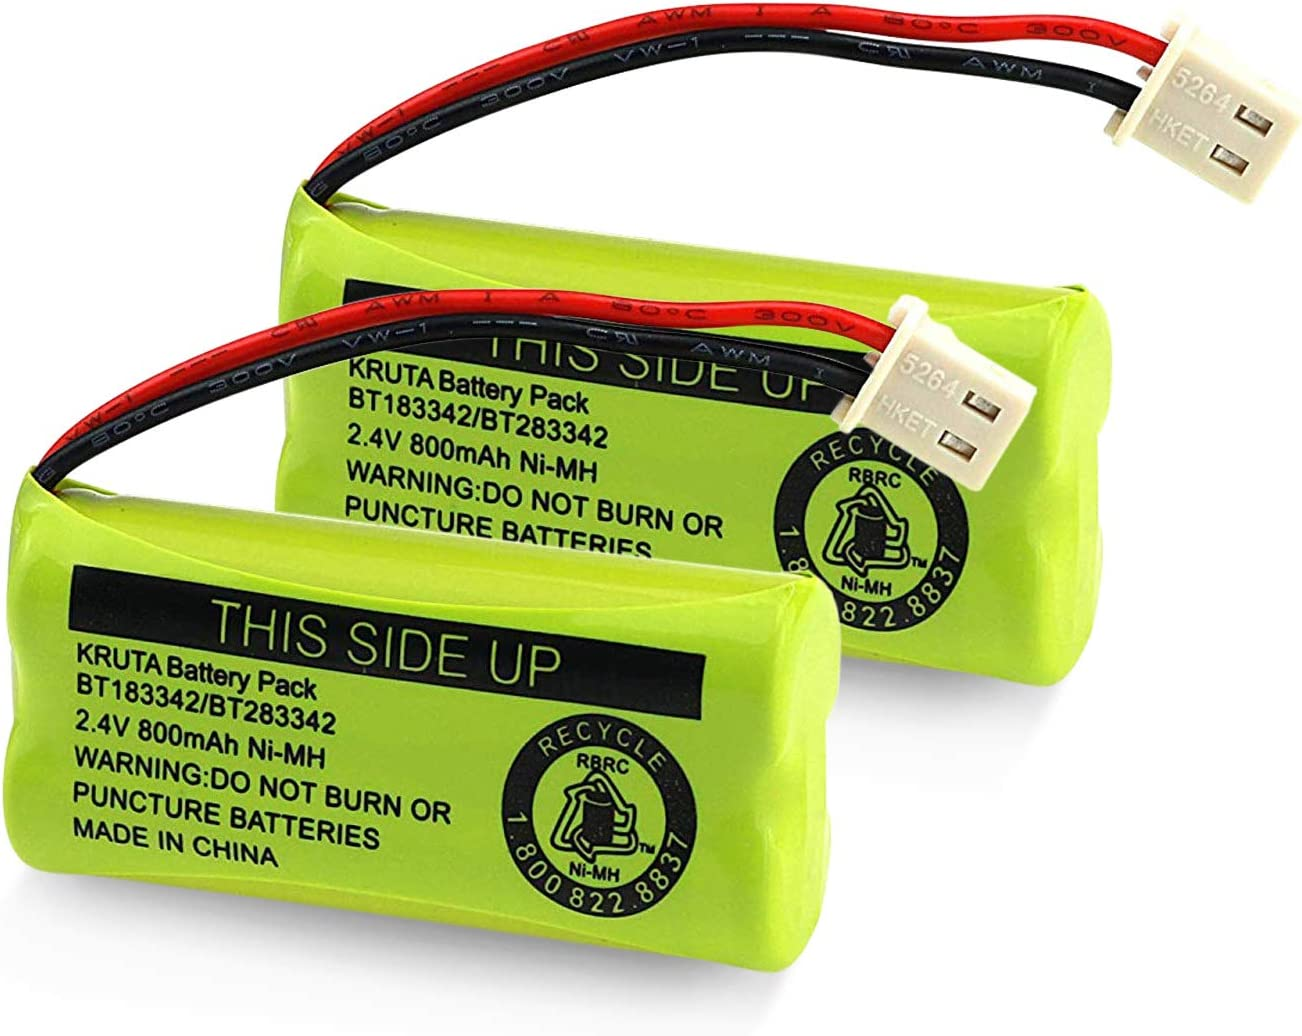 BT183342/BT283342 2.4V 800mAh Ni-MH Battery Pack, Also Compatible with AT&T VTech Cordless Phone Batteries BT166342/BT266342 BT162342/BT262342 2SN-AAA40H-S-X2